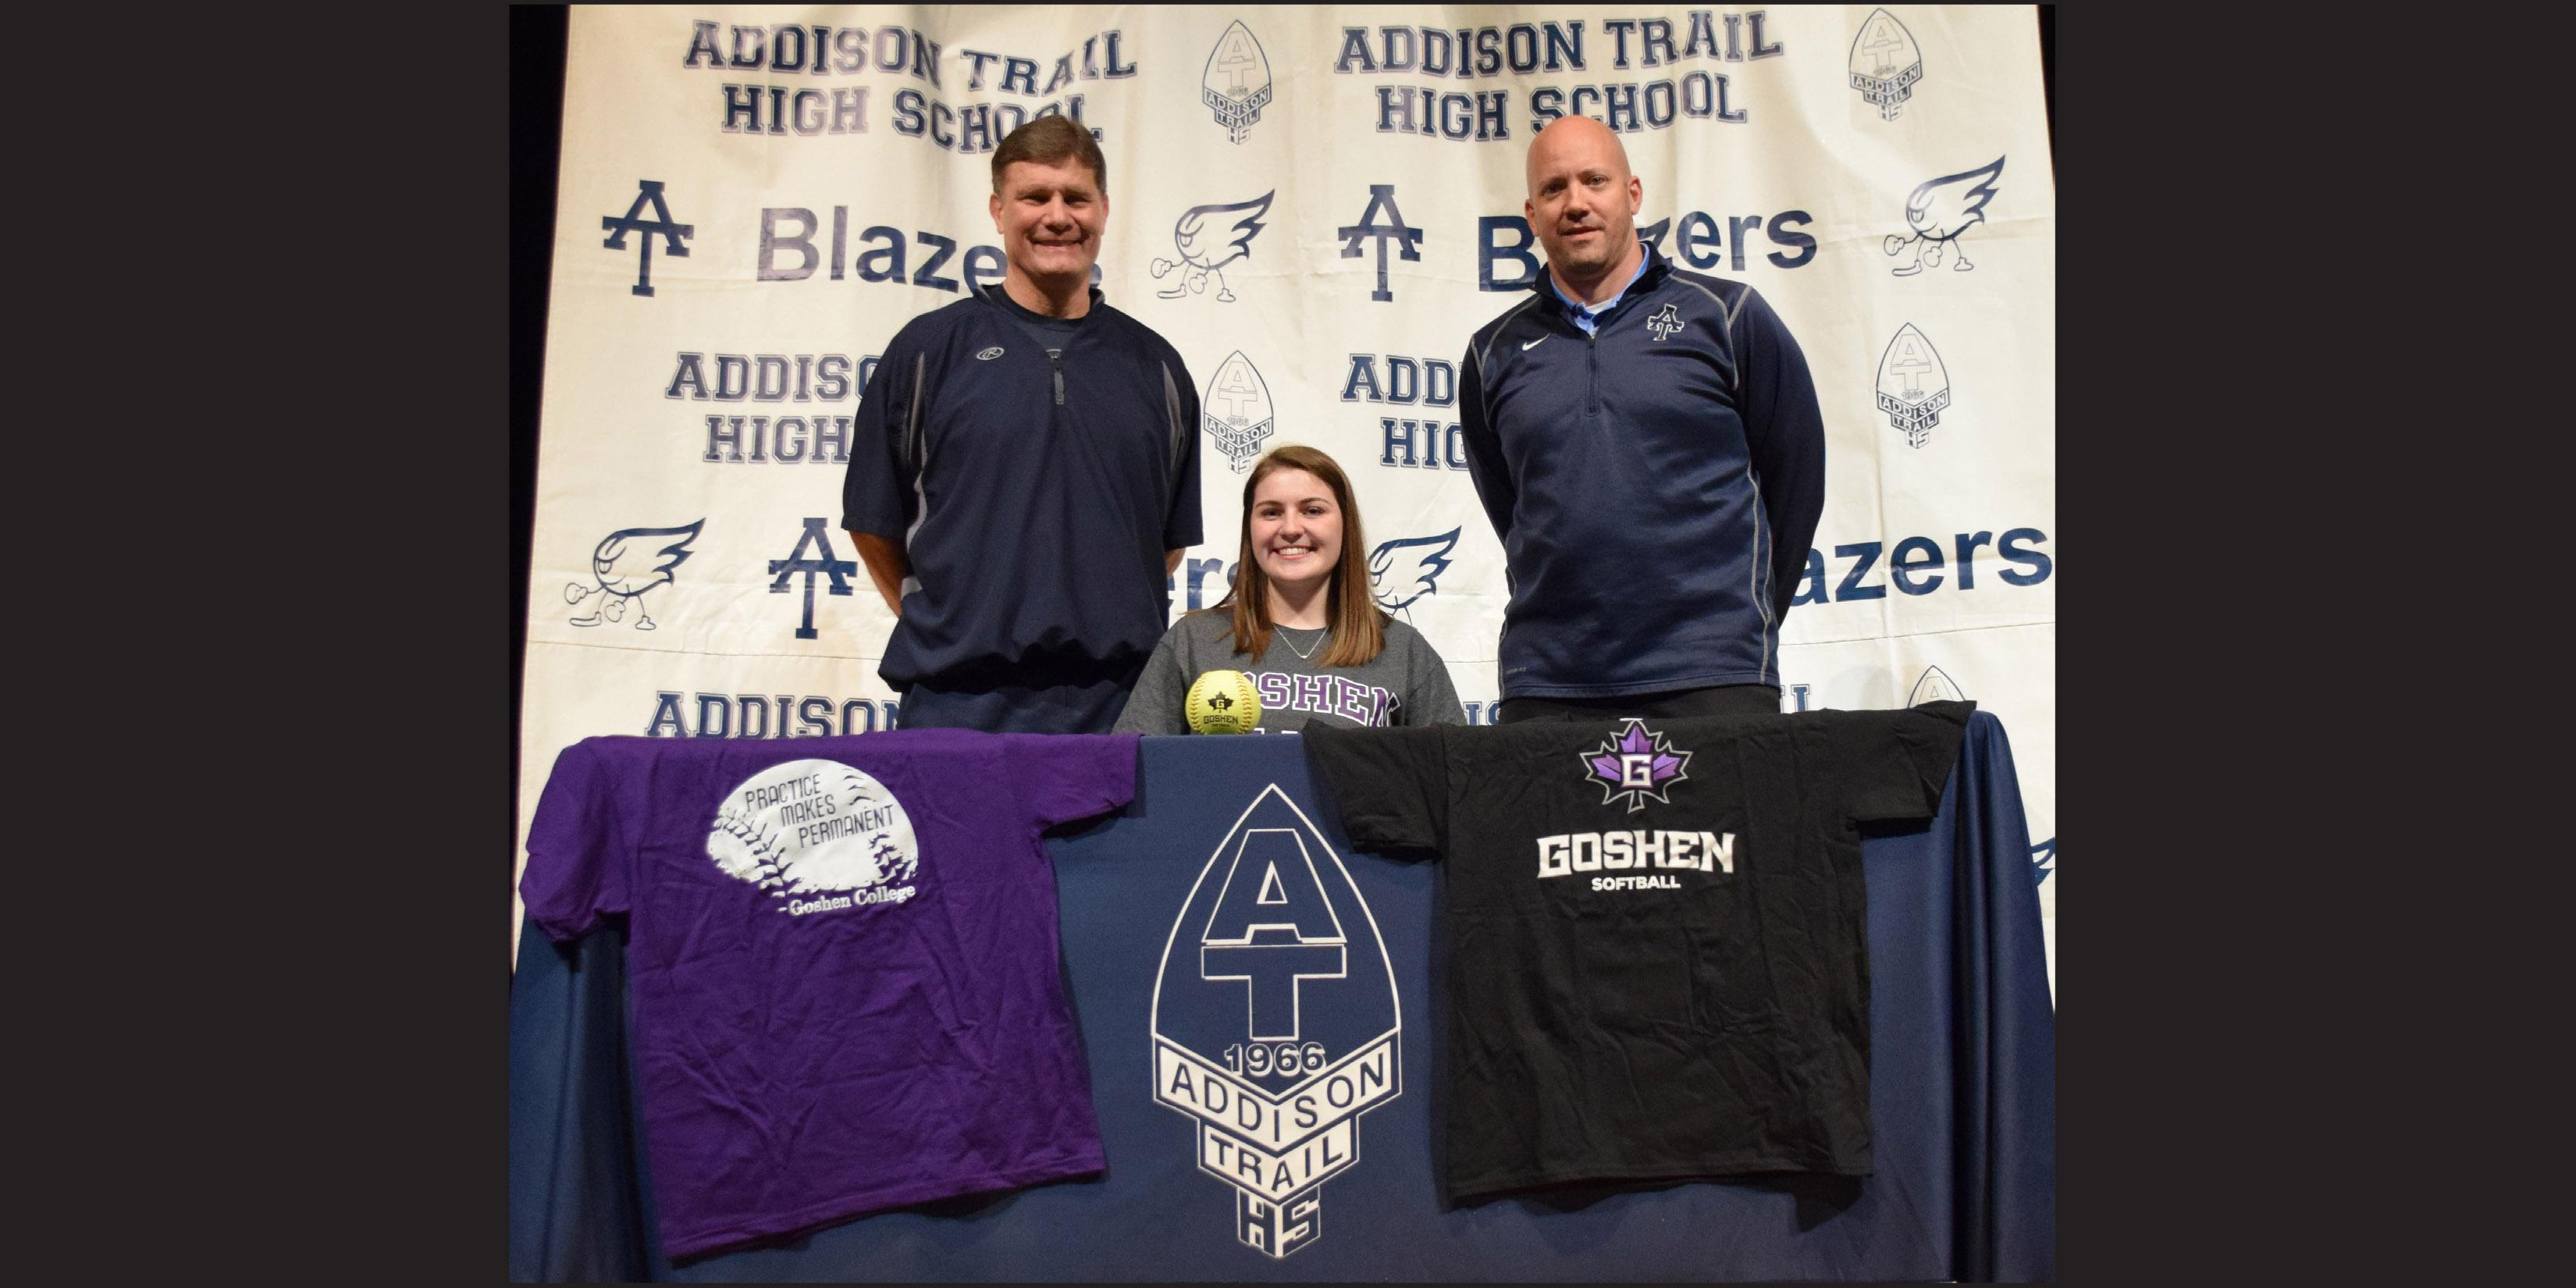 Addison Trail senior signs to play softball at Goshen College